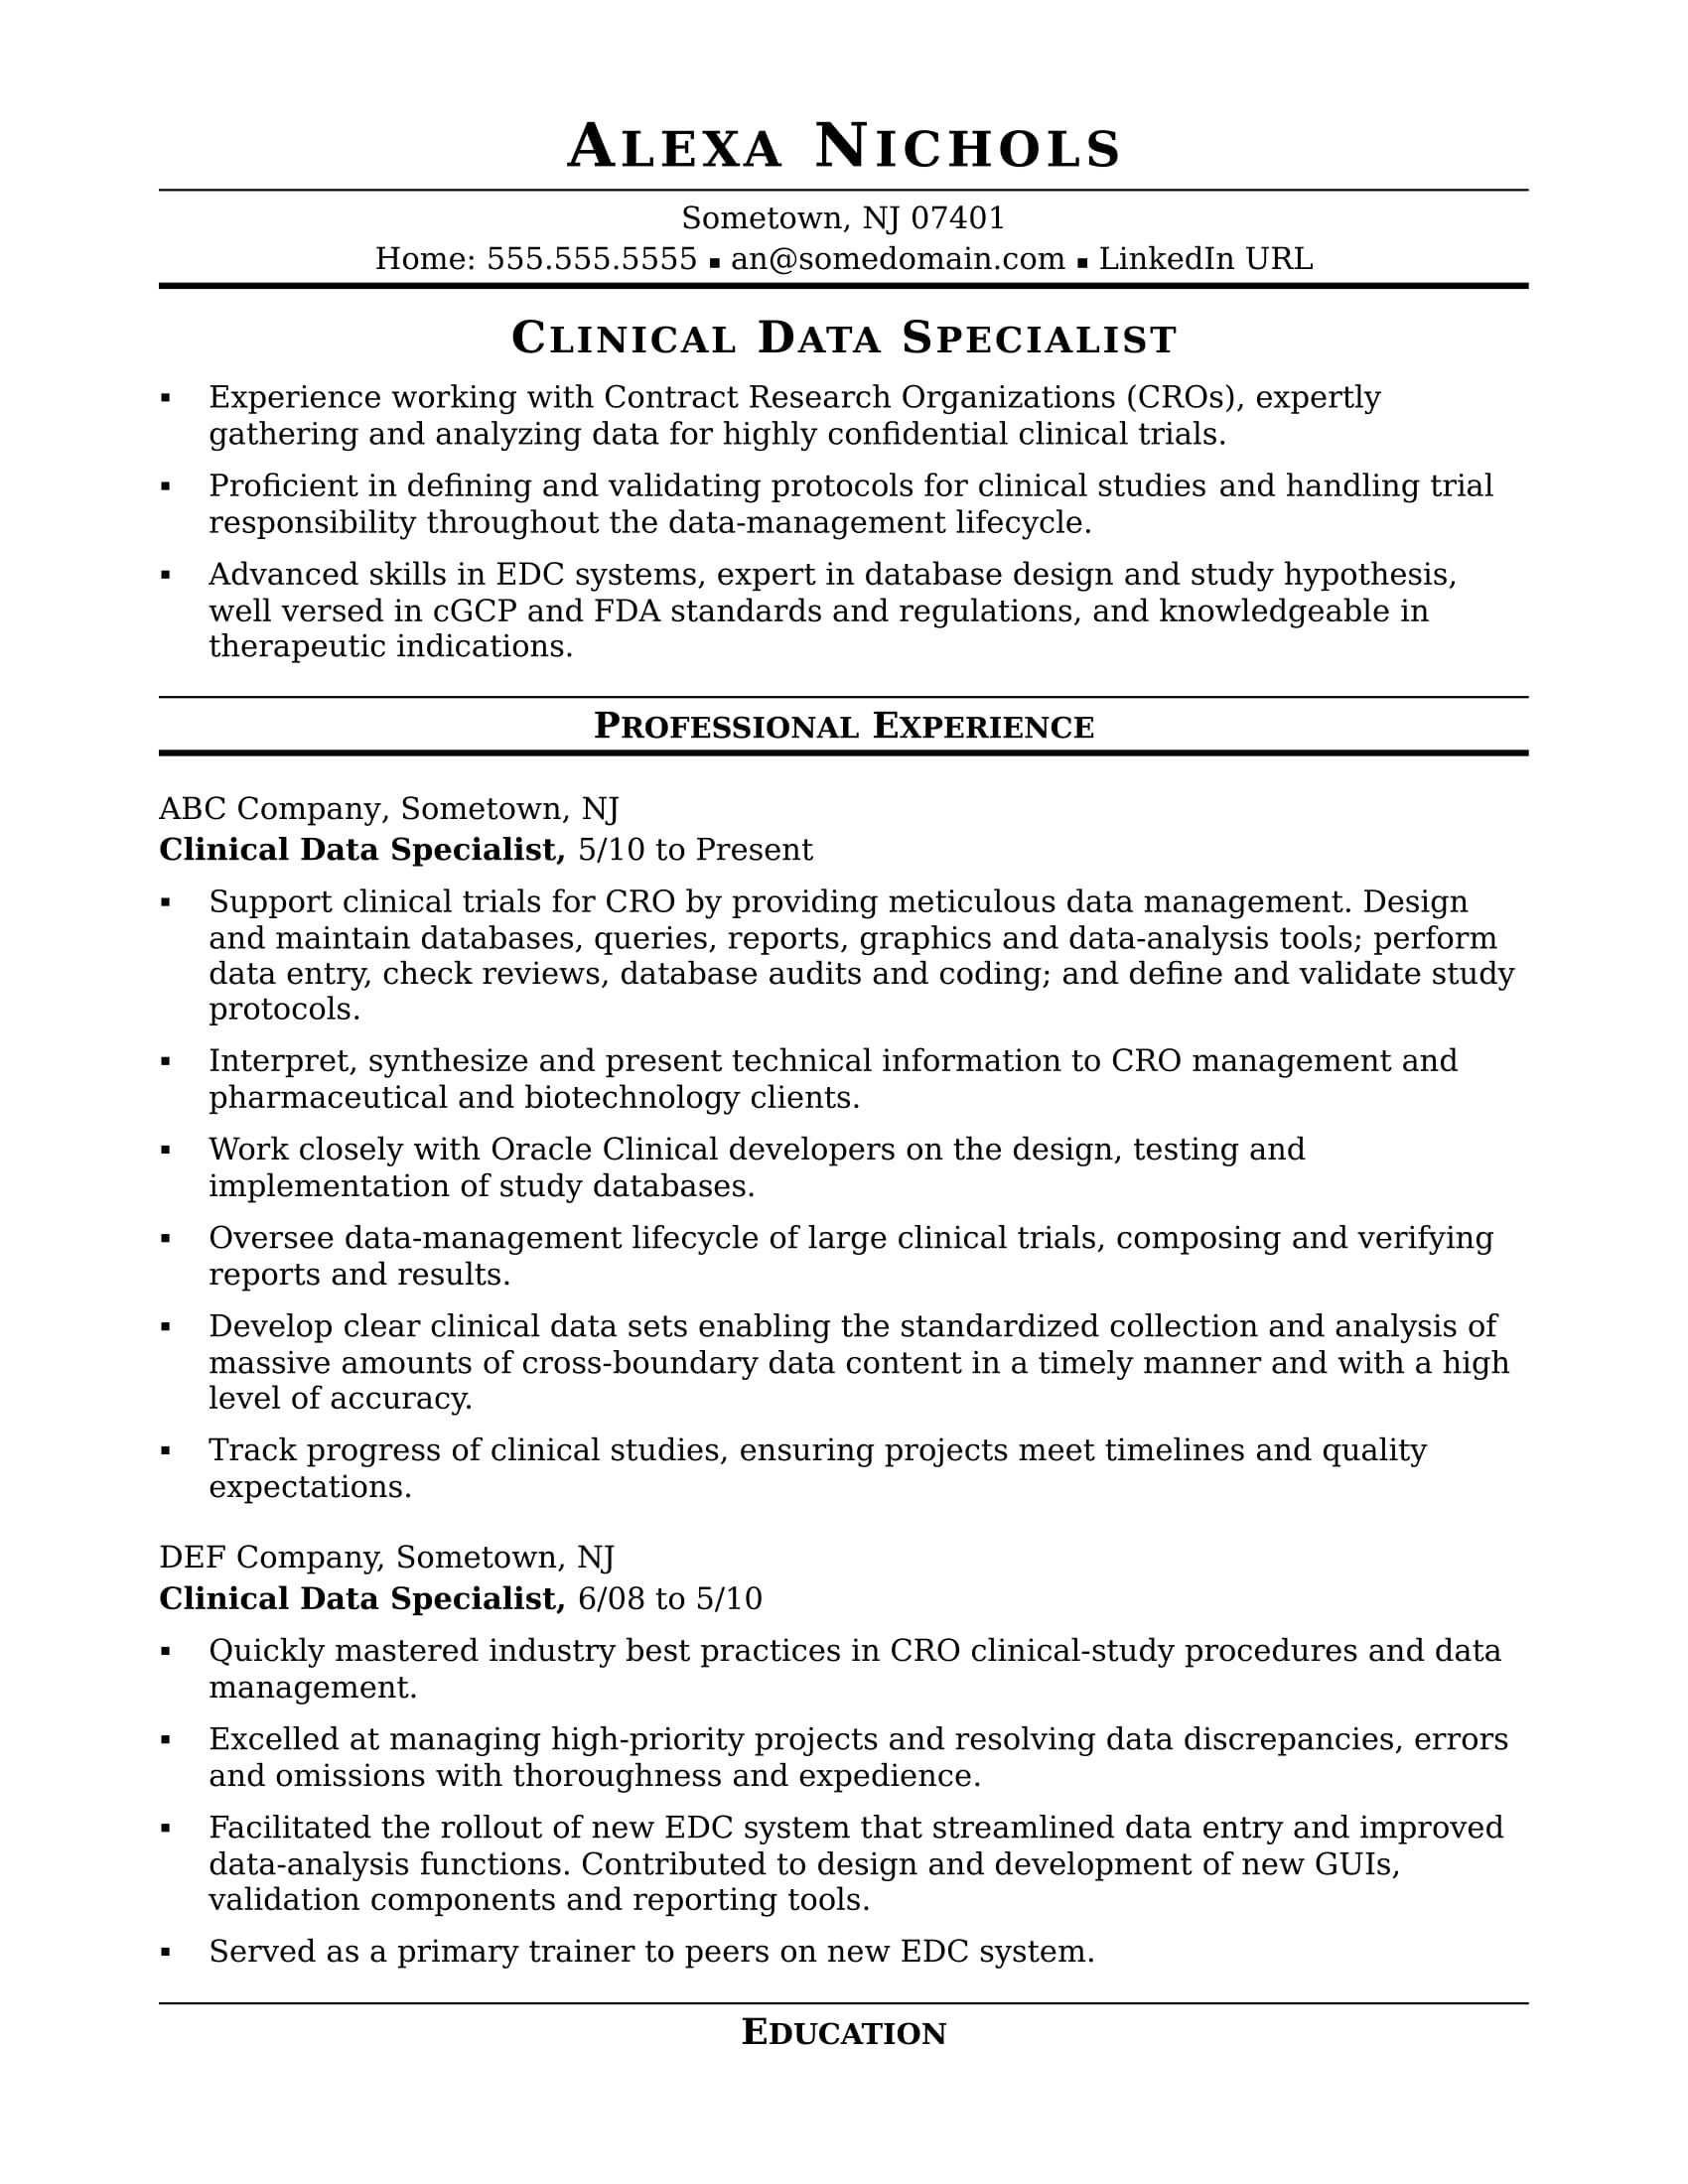 Superb Sample Resume For A Midlevel Clinical Data Specialist Within Data Management Resume